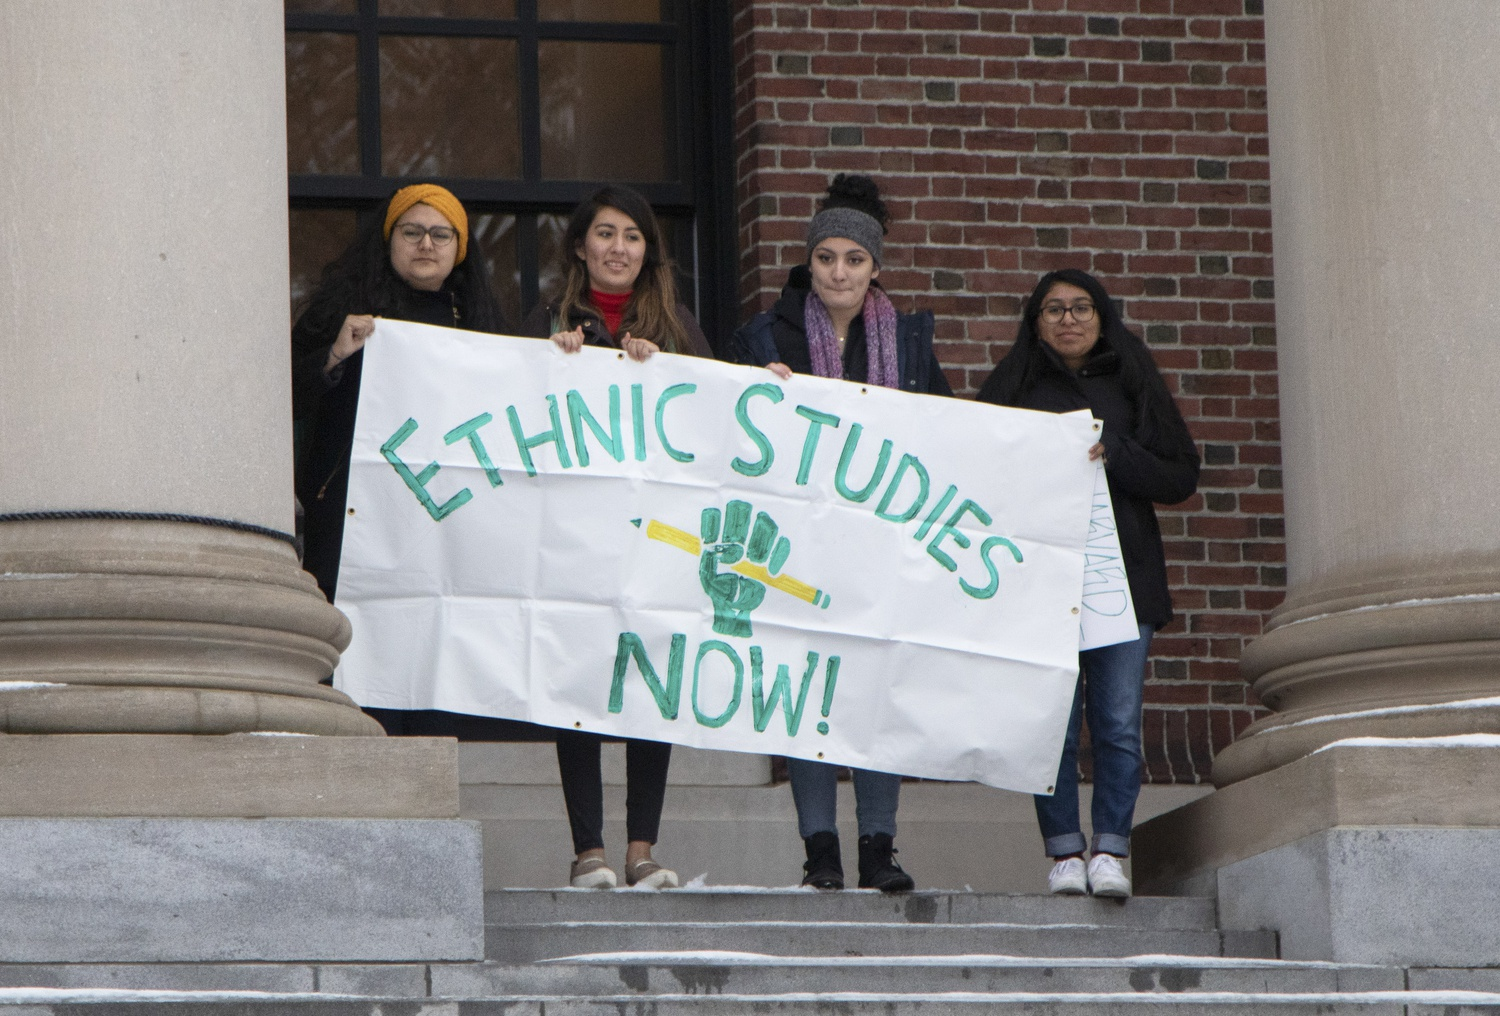 Students hold an Ethnic Studies sign outside Widener Library during a rally on Friday.